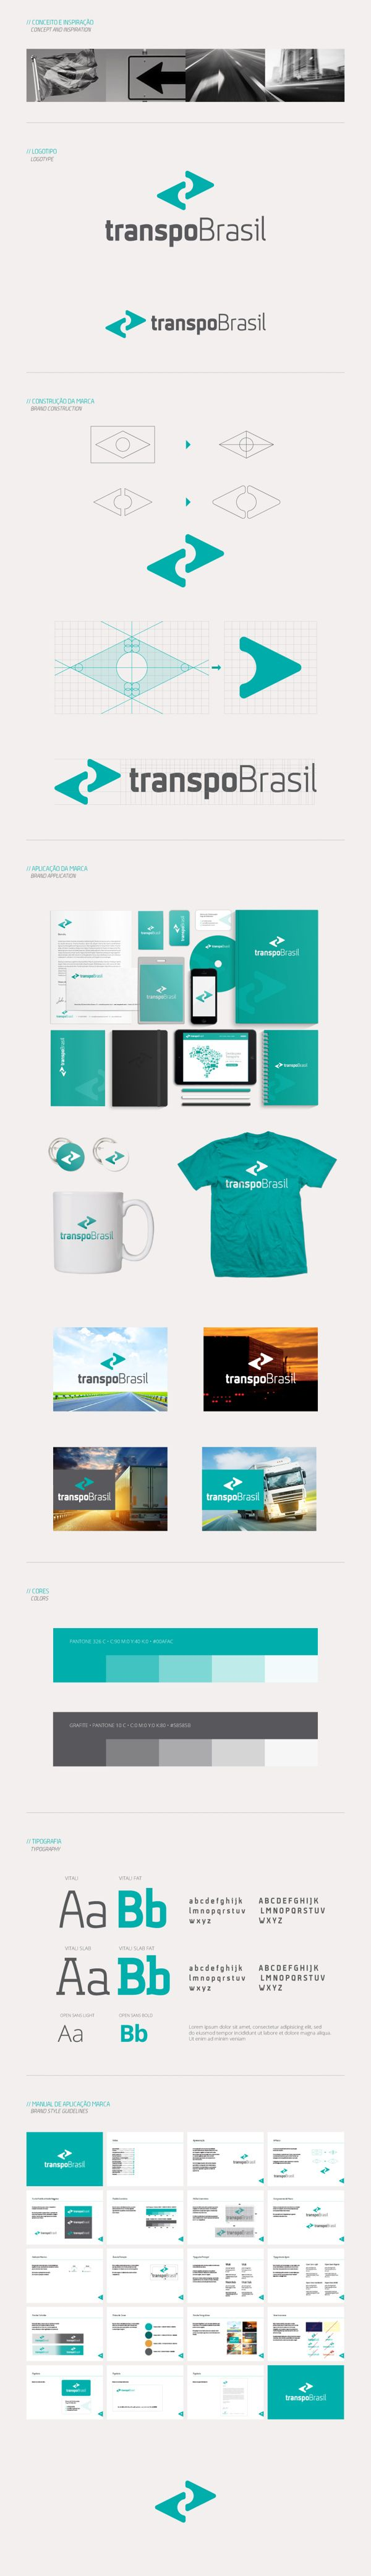 transpoBrasil by Arthur William Presser, via Behance